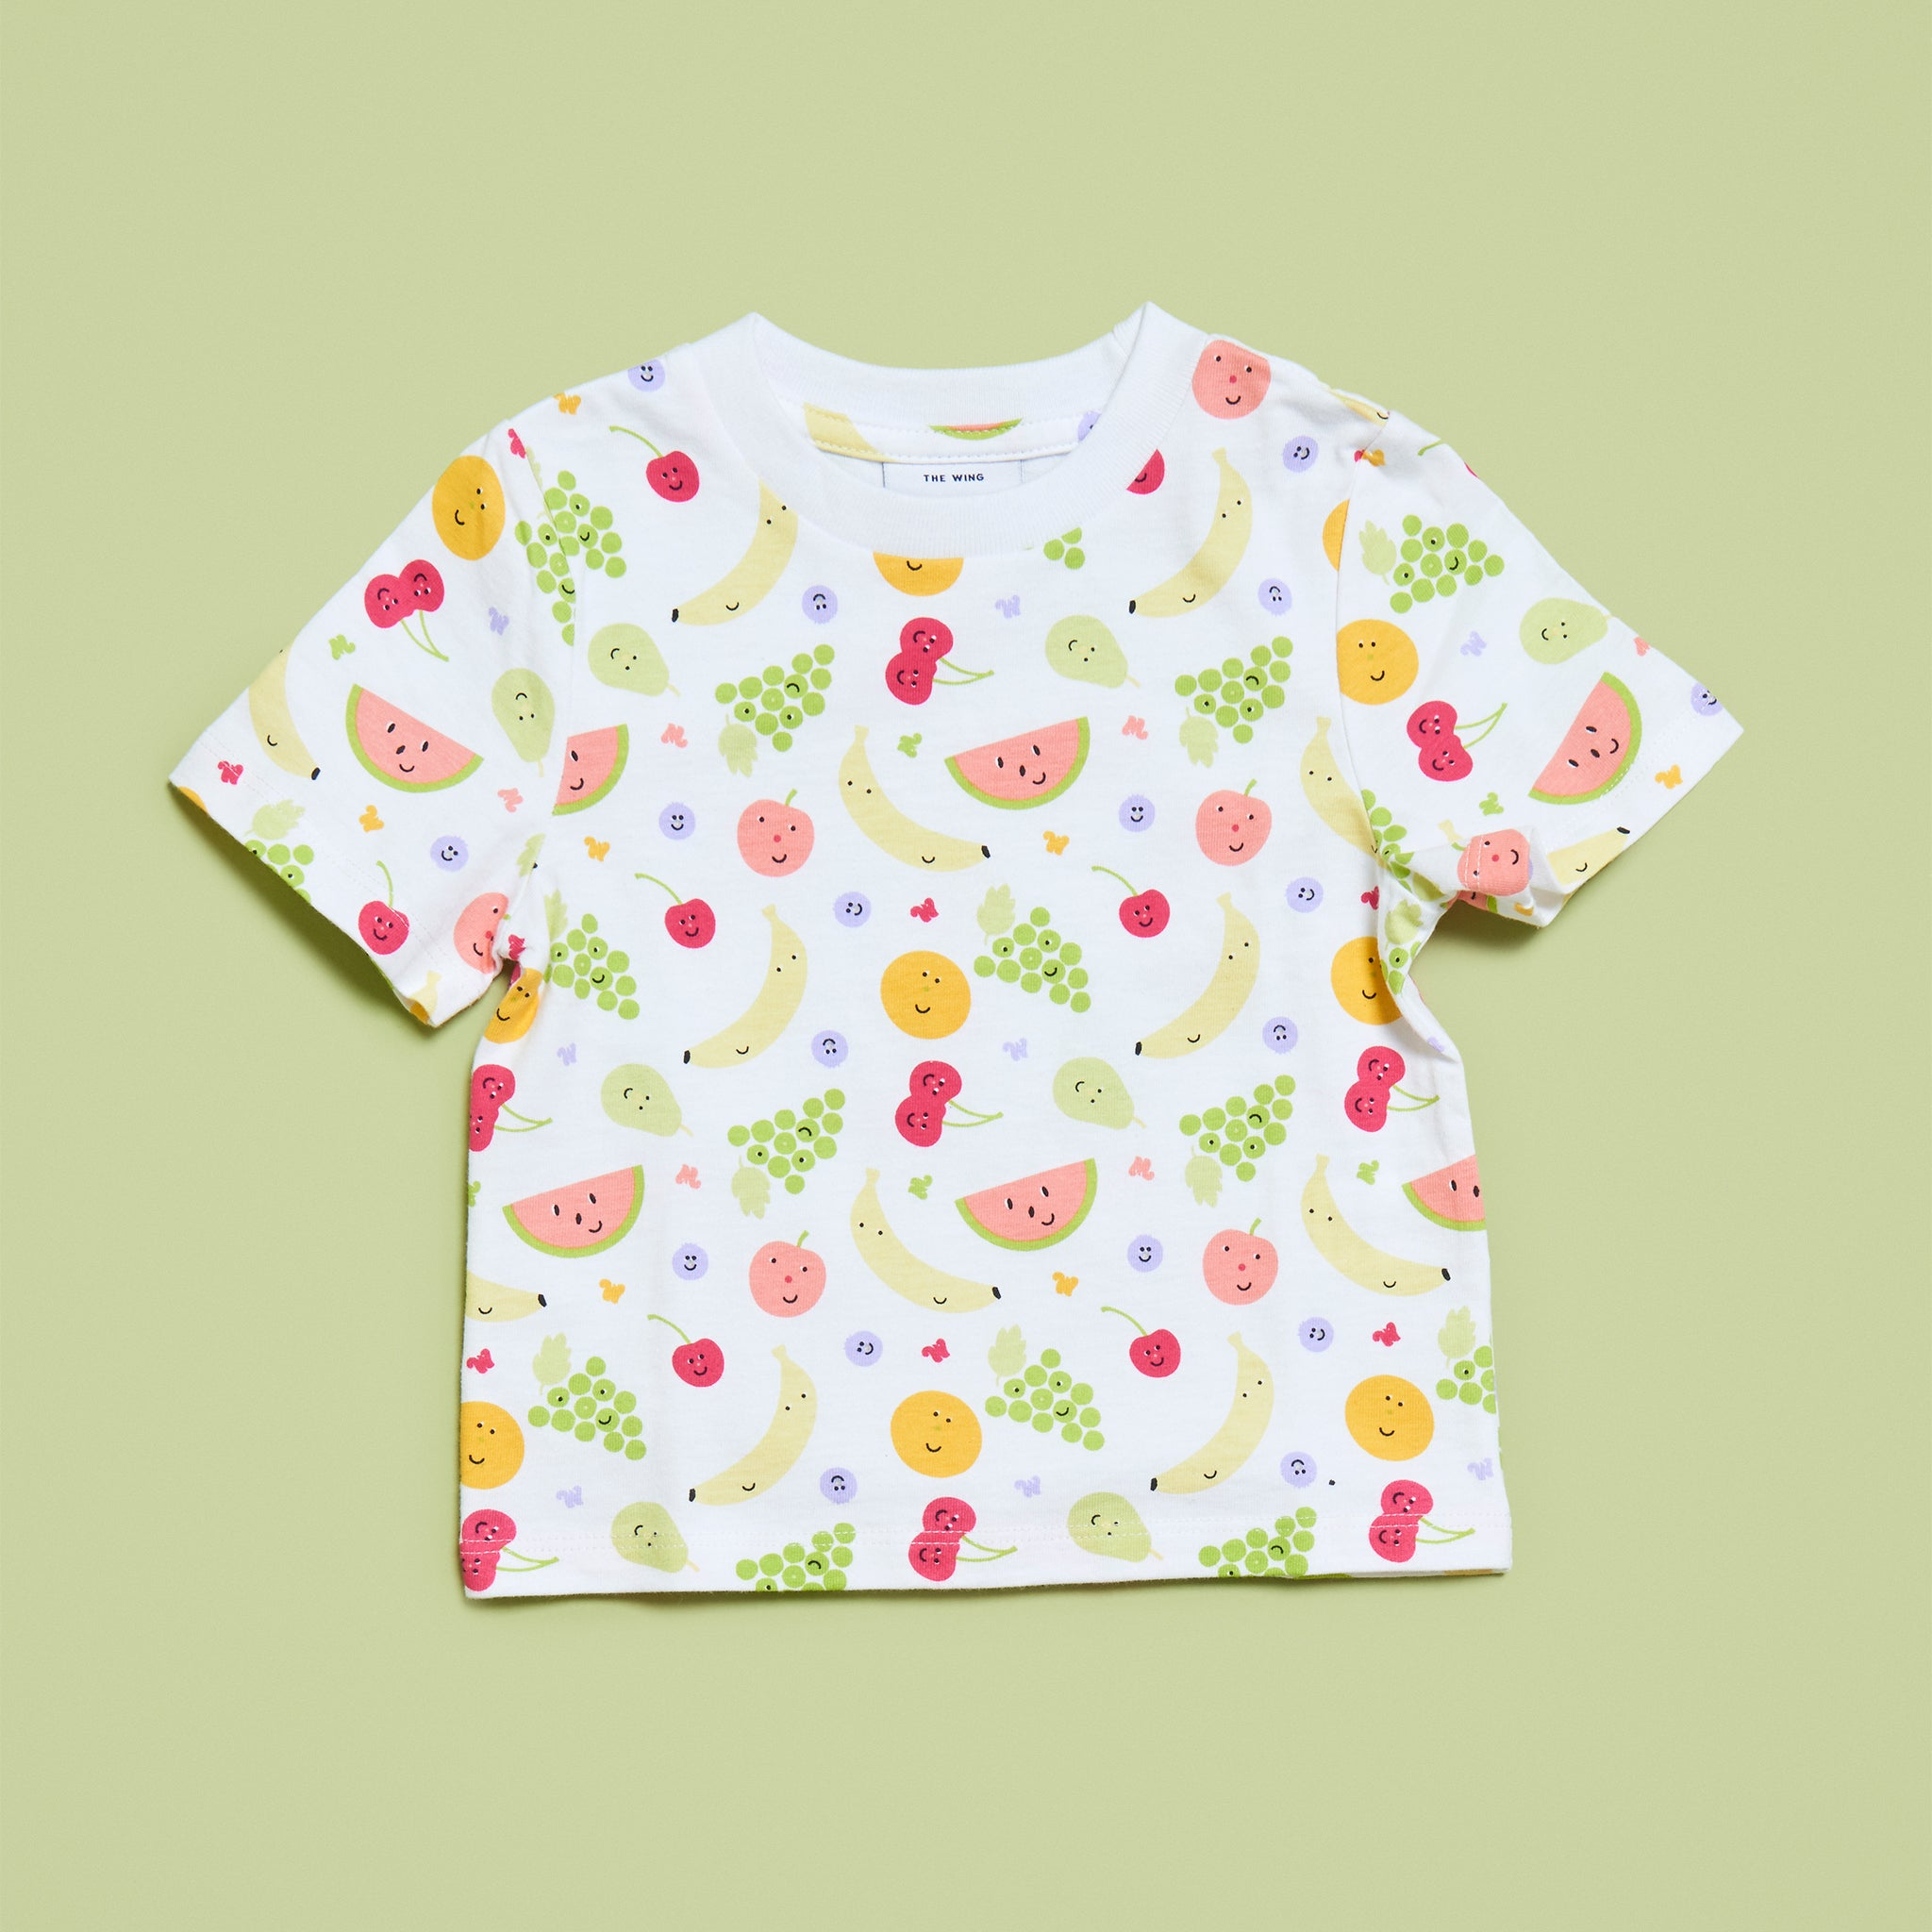 Fruit Salad Toddler Tee